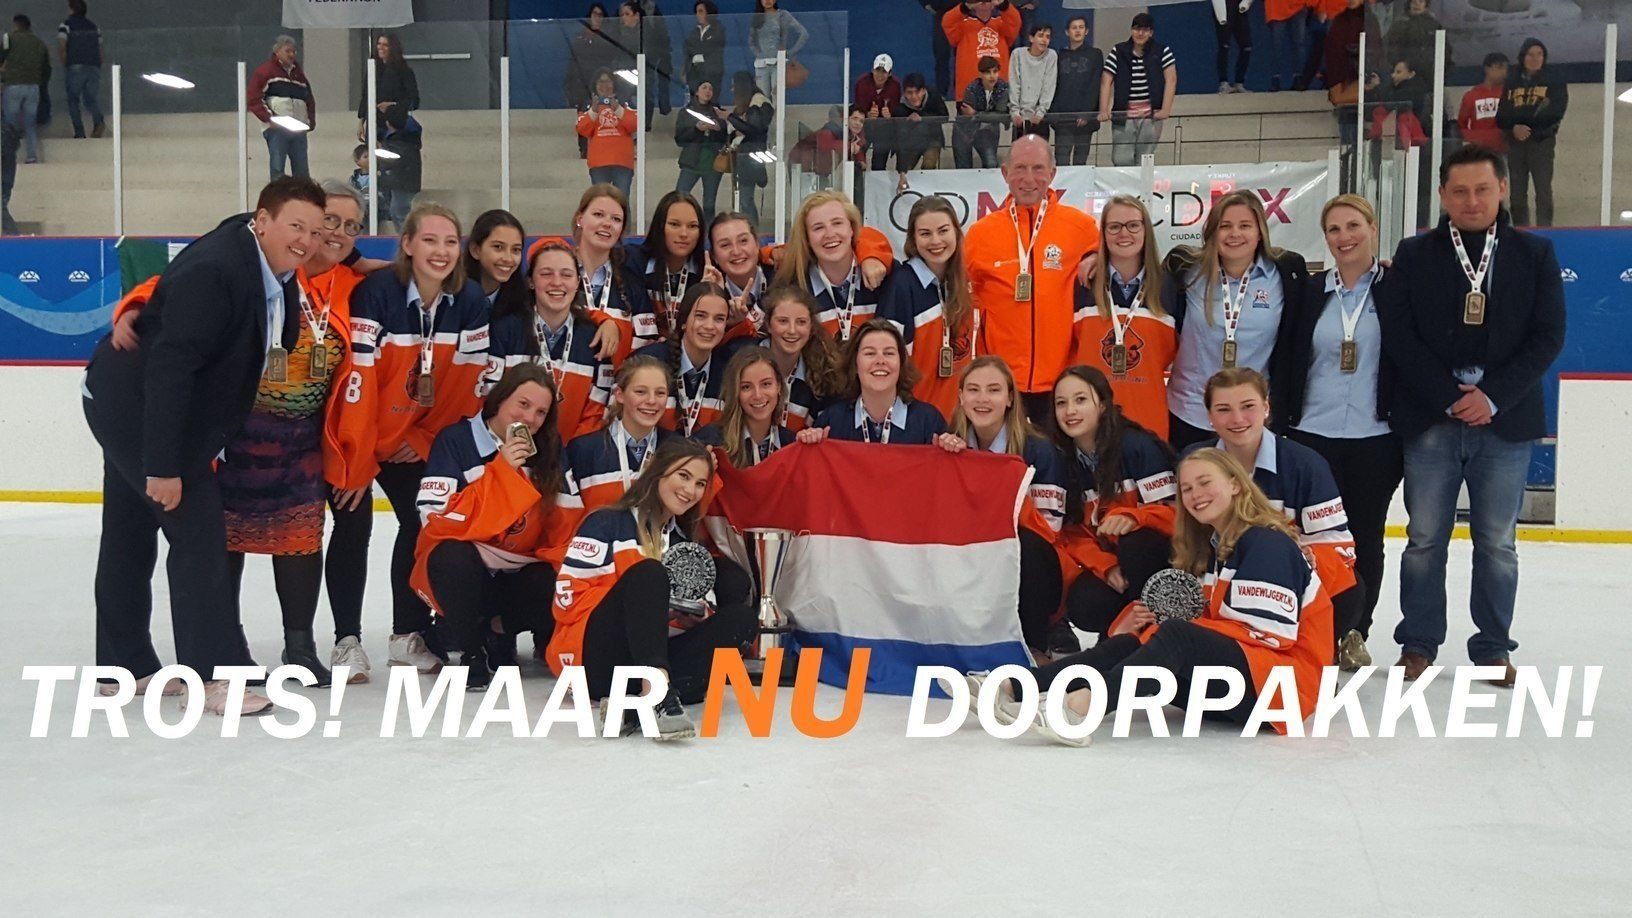 Nederland U18 Ijshockey Face-oFf